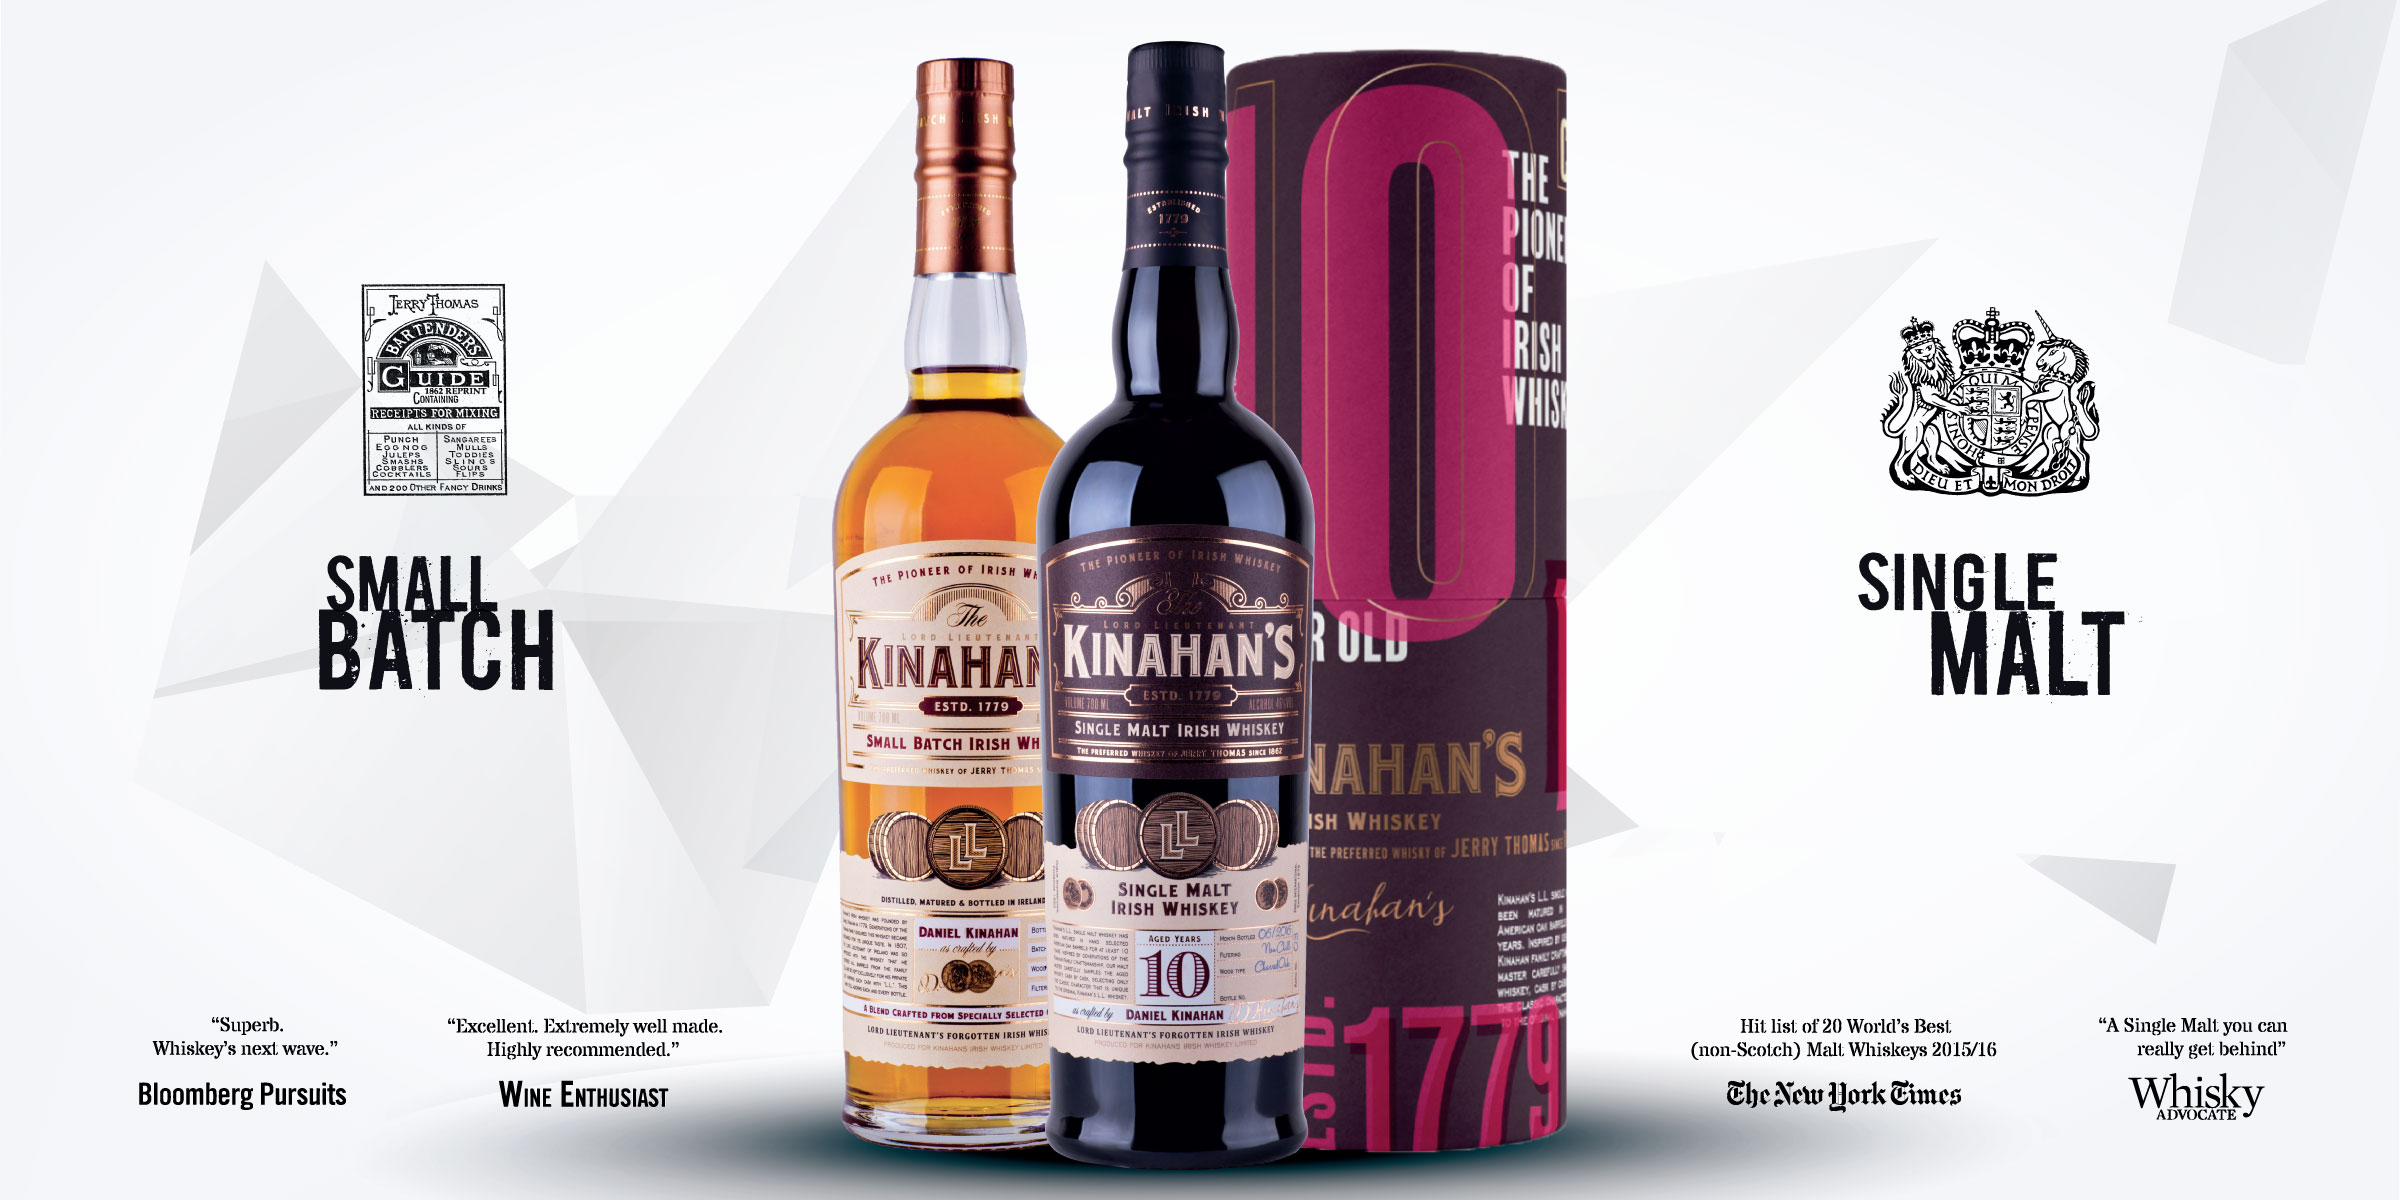 Kinahans whiskey heritage line